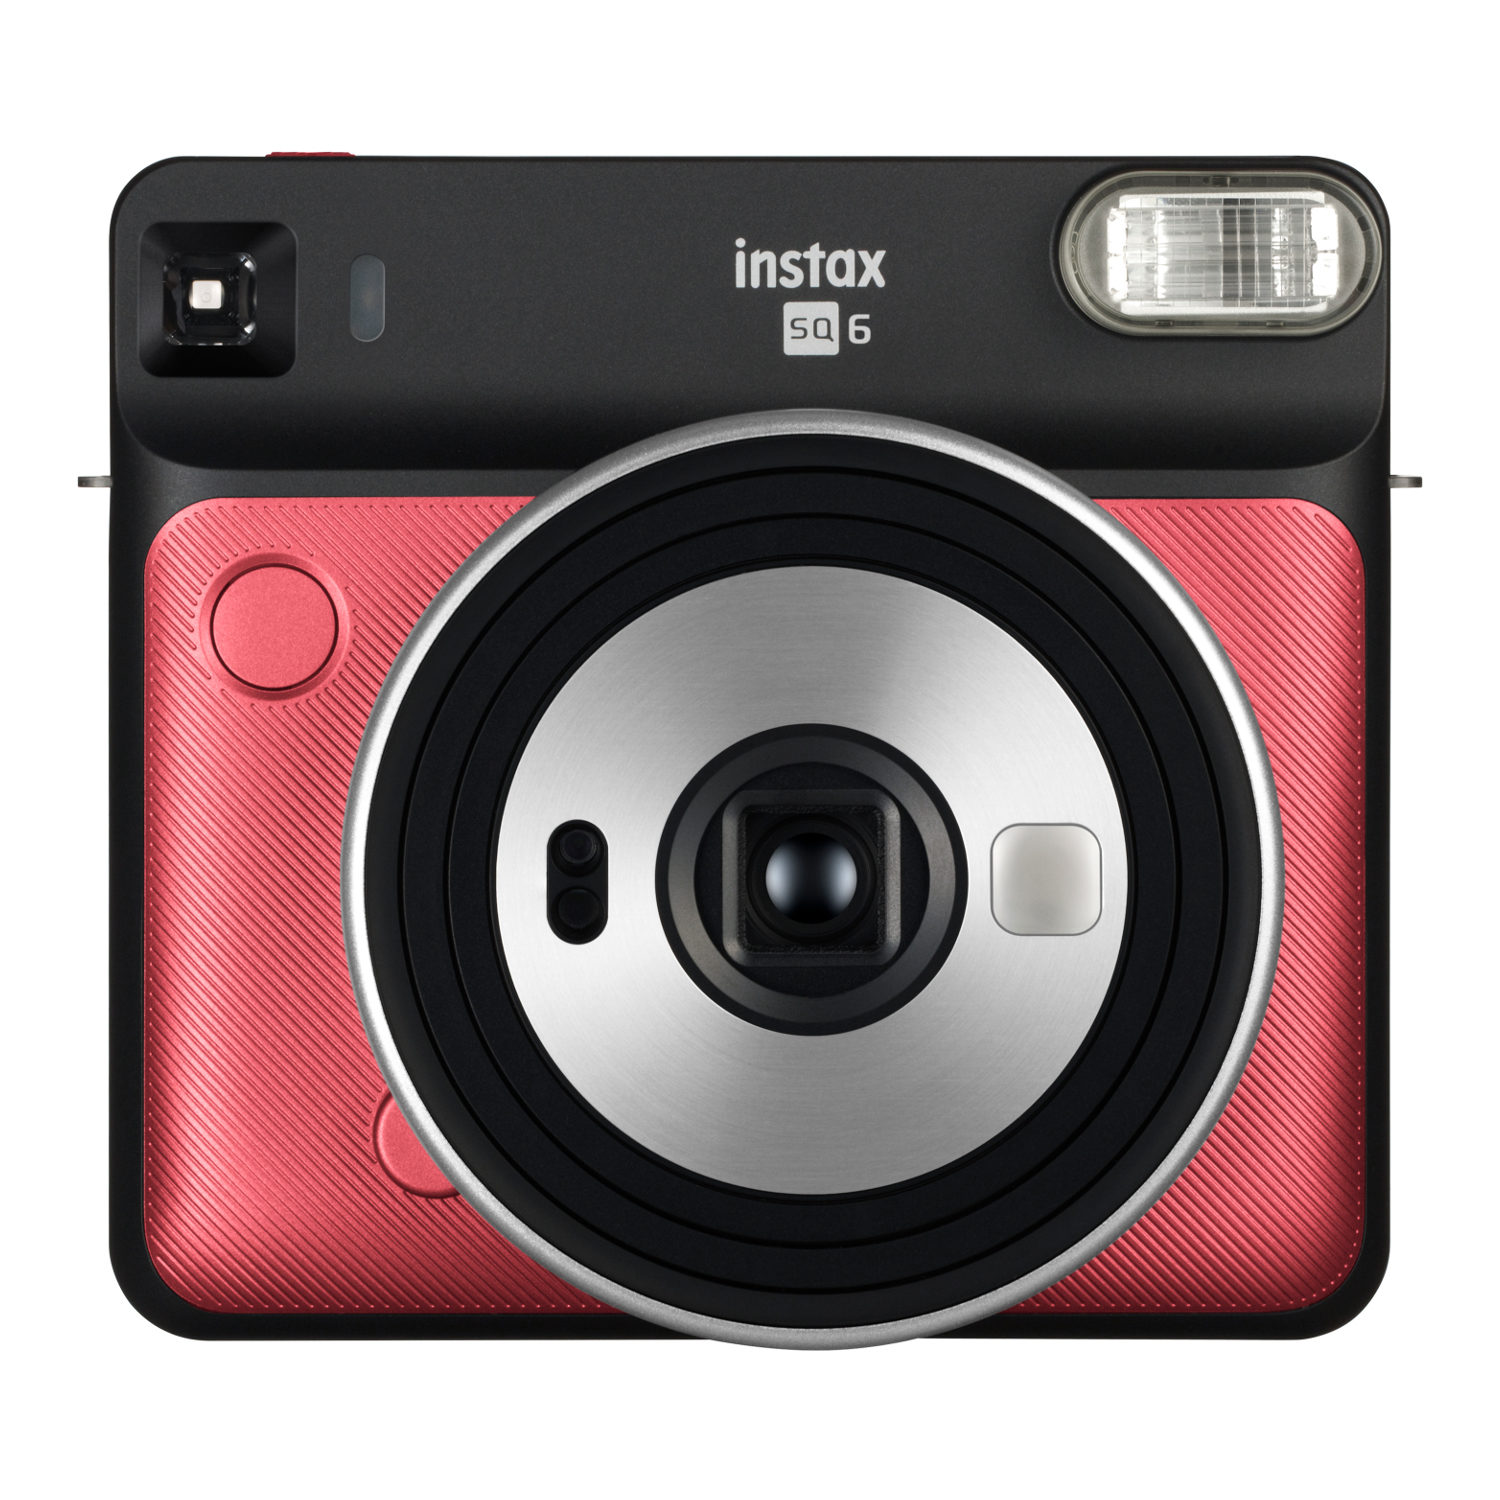 Fujifilm Instax Square SQ6 instant camera Ruby Red + Fujifilm Instax Square Film (2-Pak) + Jupio CR2 3V Lithium batterij + Fujifilm Instax SQ6 Case Graphite Gray